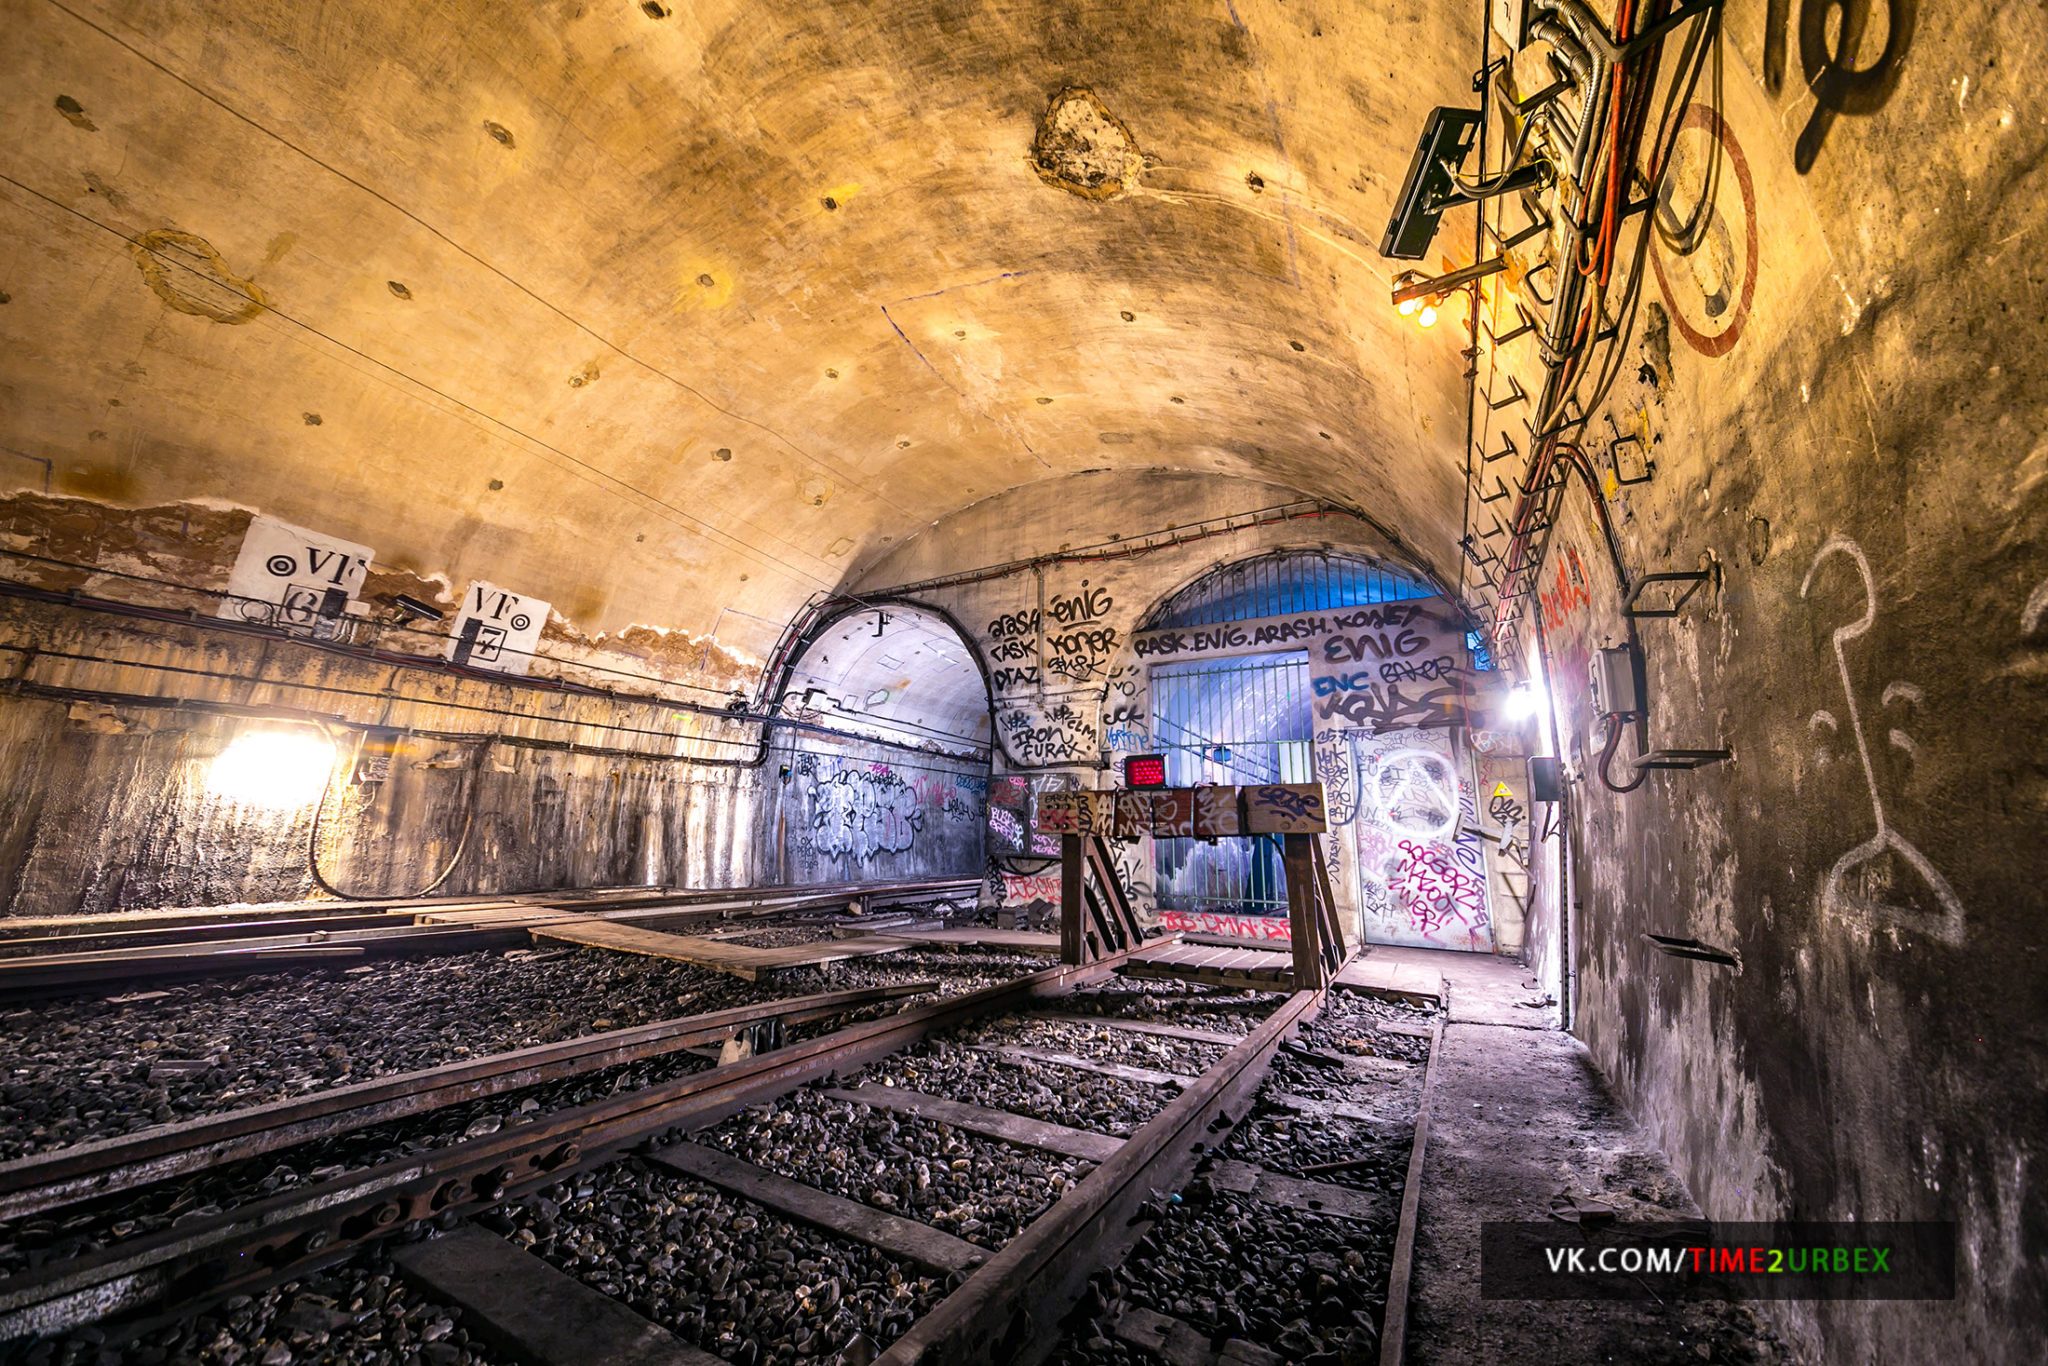 55 7 GHOST STATIONS OF THE PARIS METRO AND HOW TO GET INTO THE ILLEGALLY + UNUSUAL TUNNELS + RER